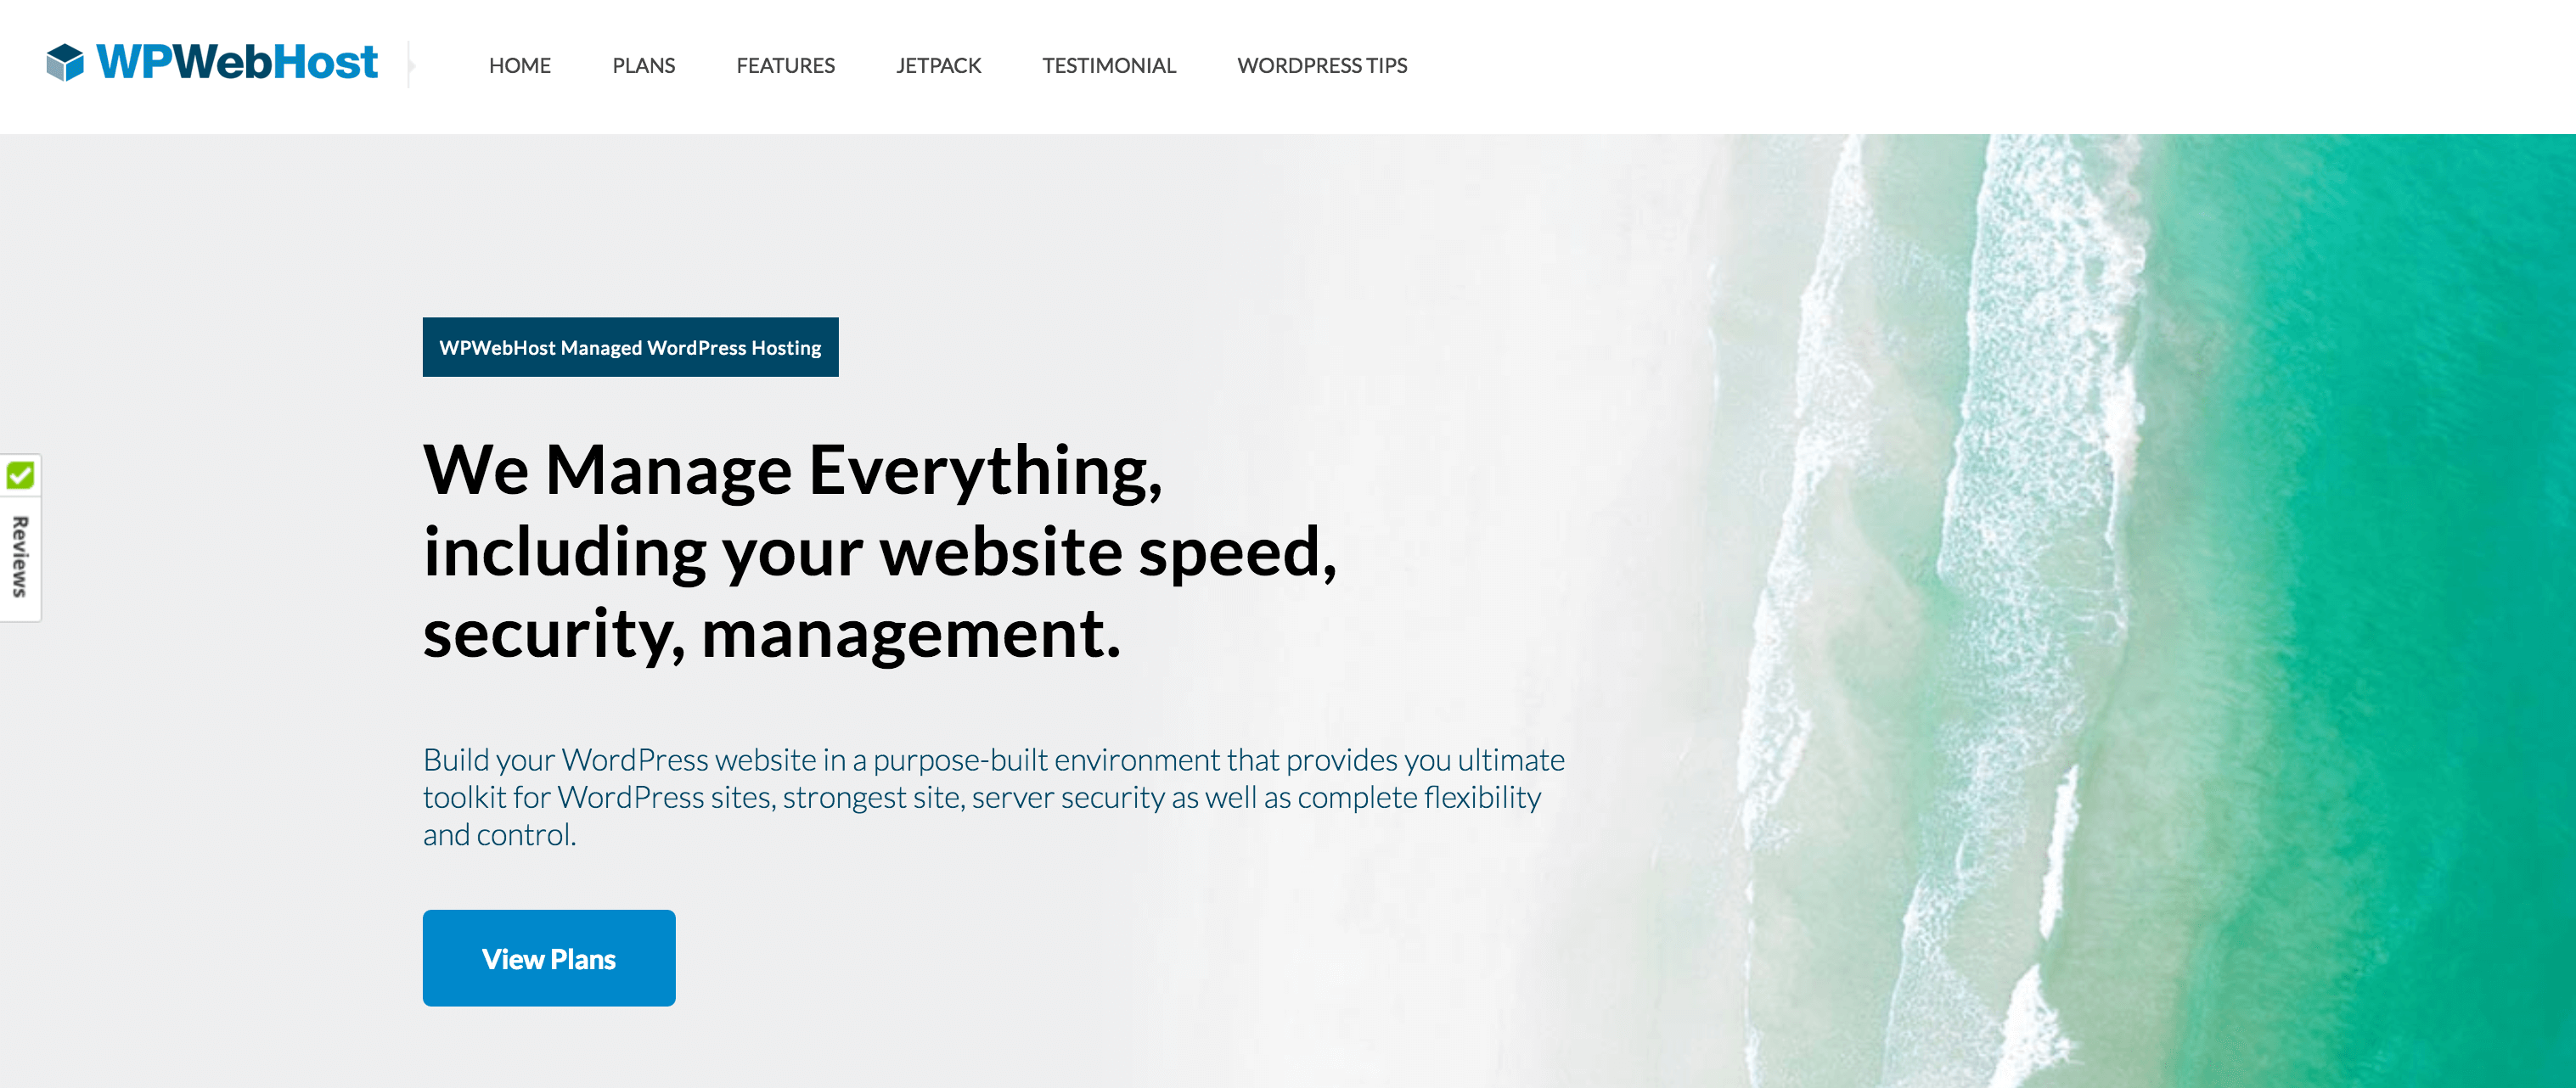 The WPWebHost page for WordPress managed hosting.